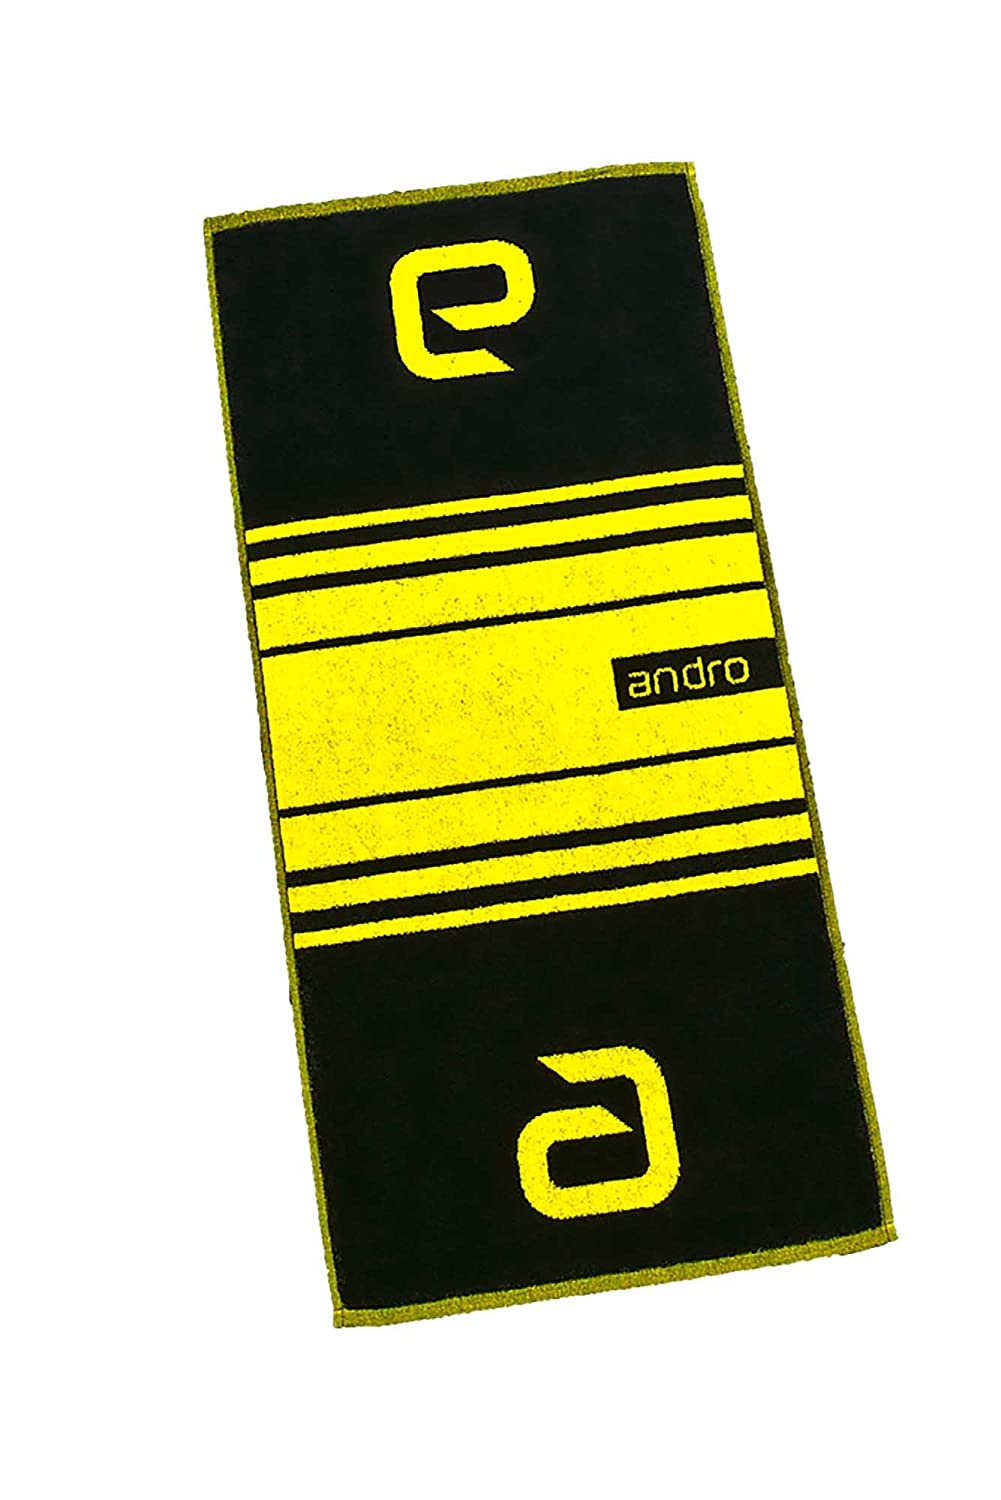 Andro Towel Stripes options St black/yellow 88809143